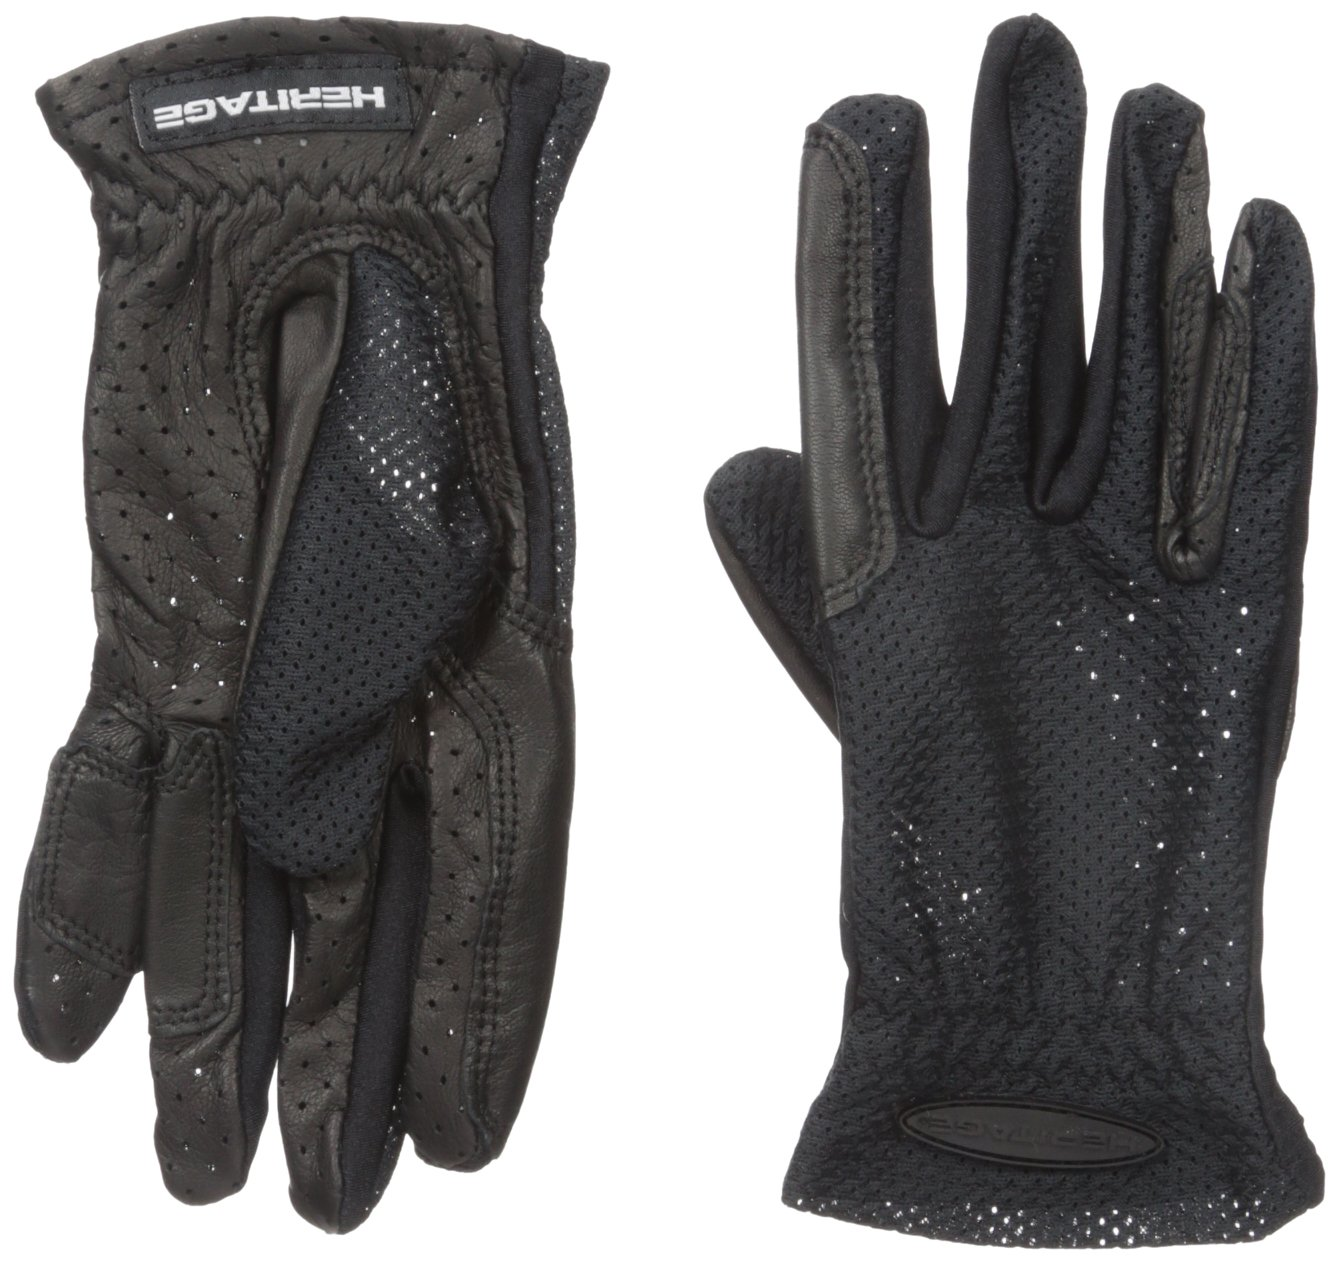 8202ea103eb39 Amazon.com : Heritage Pro-Flow Summer Show Glove : Golf Gloves : Sports &  Outdoors